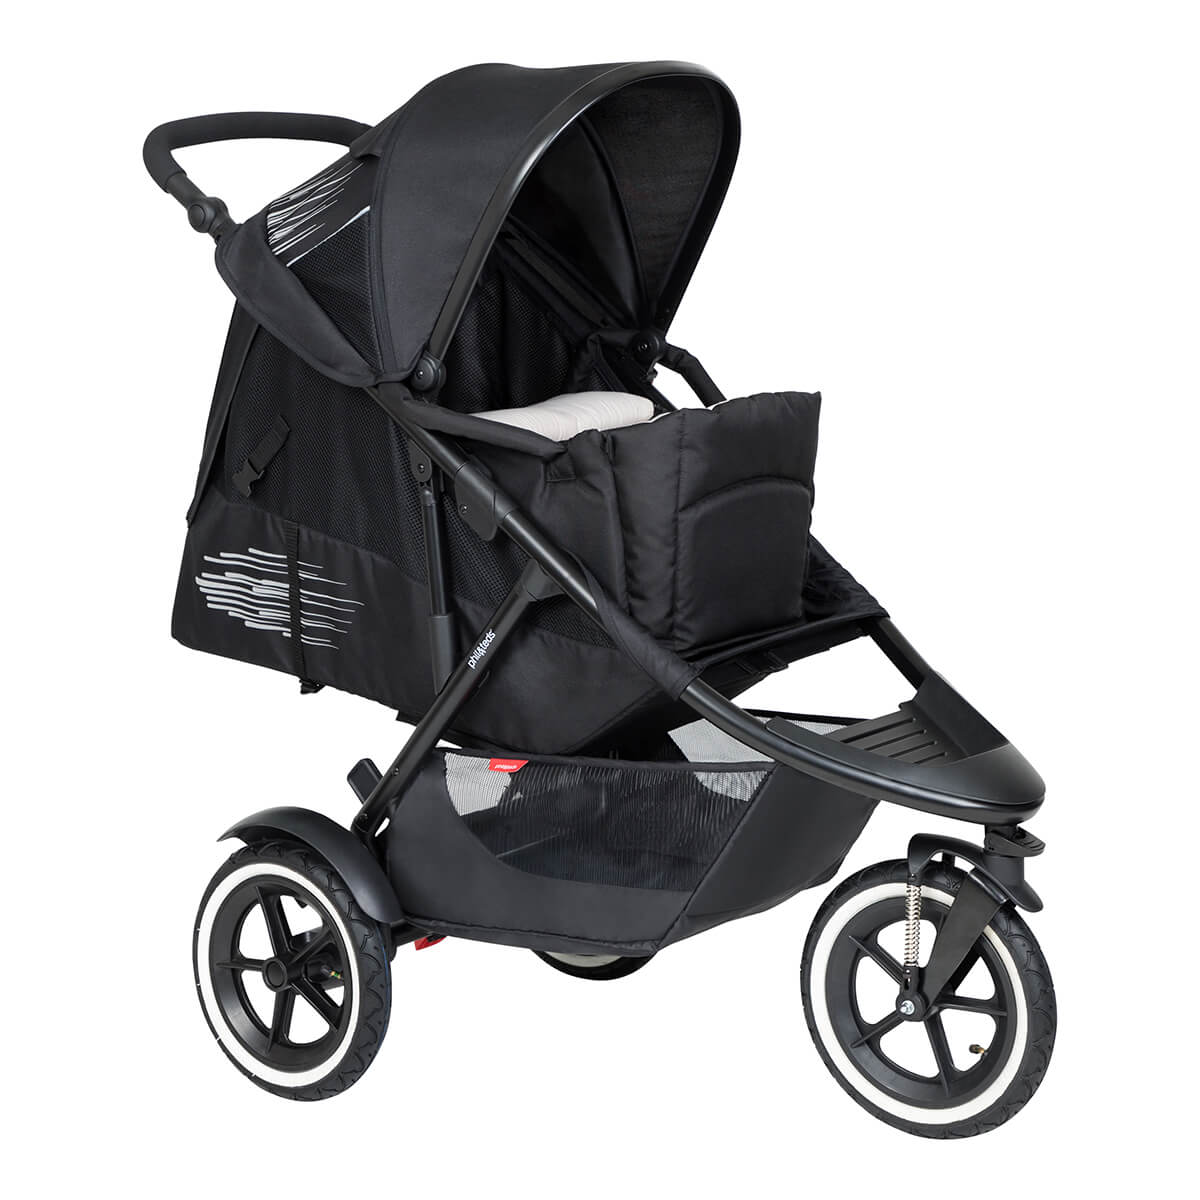 https://cdn.accentuate.io/4509528490072/19272668119128/philteds-sport-poussette-with-cocoon-full-recline-v1626484483883.jpg?1200x1200